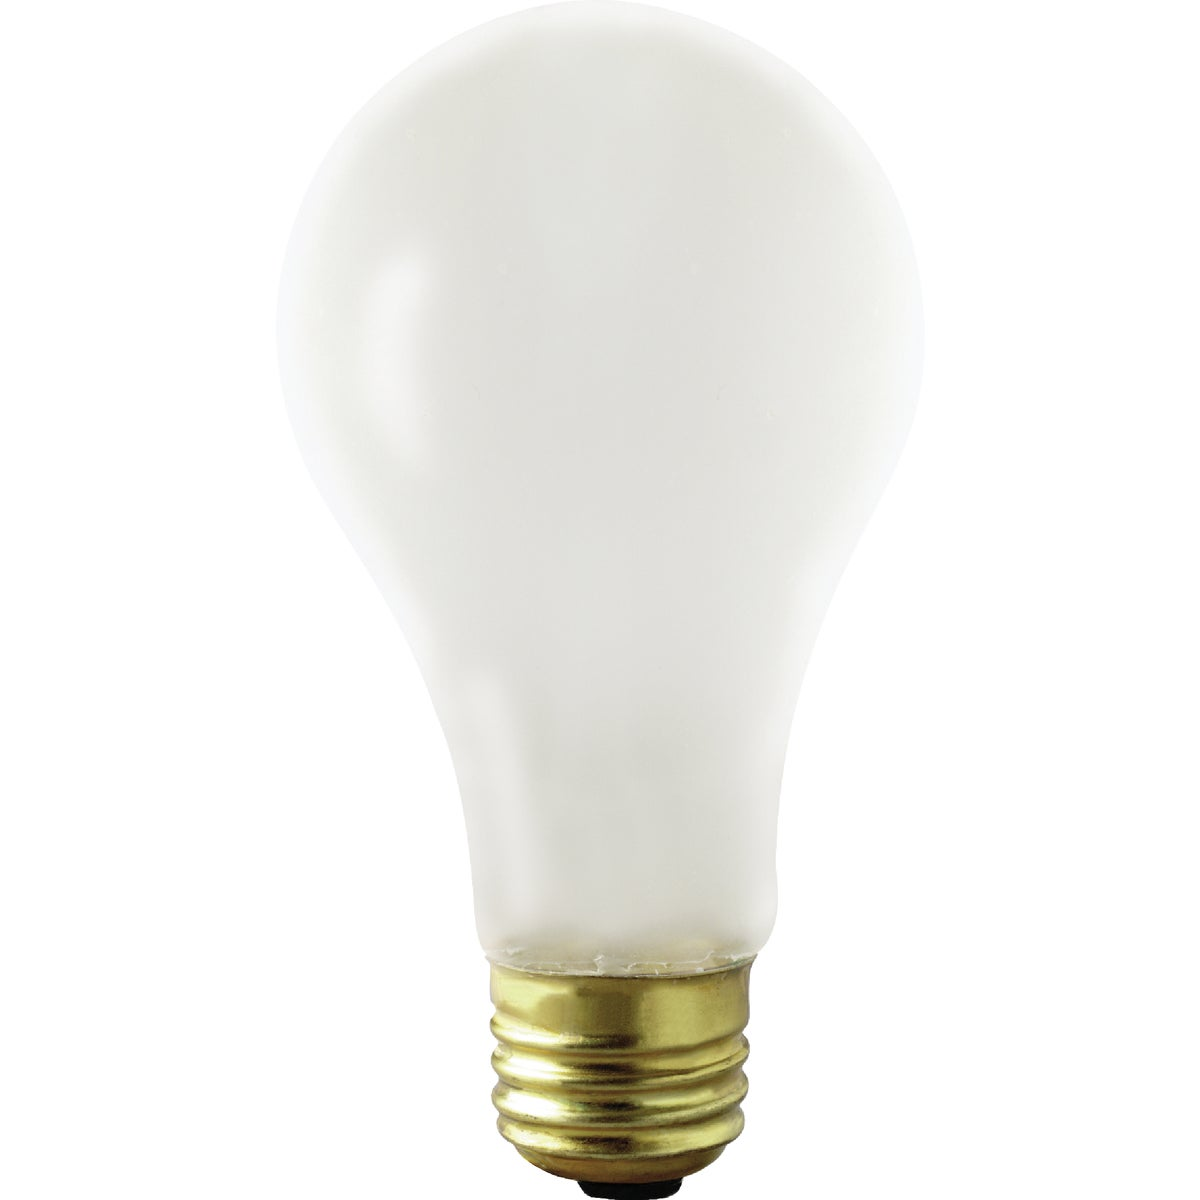 150W GARAGE LIGHT BULB - 72532 by G E Lighting